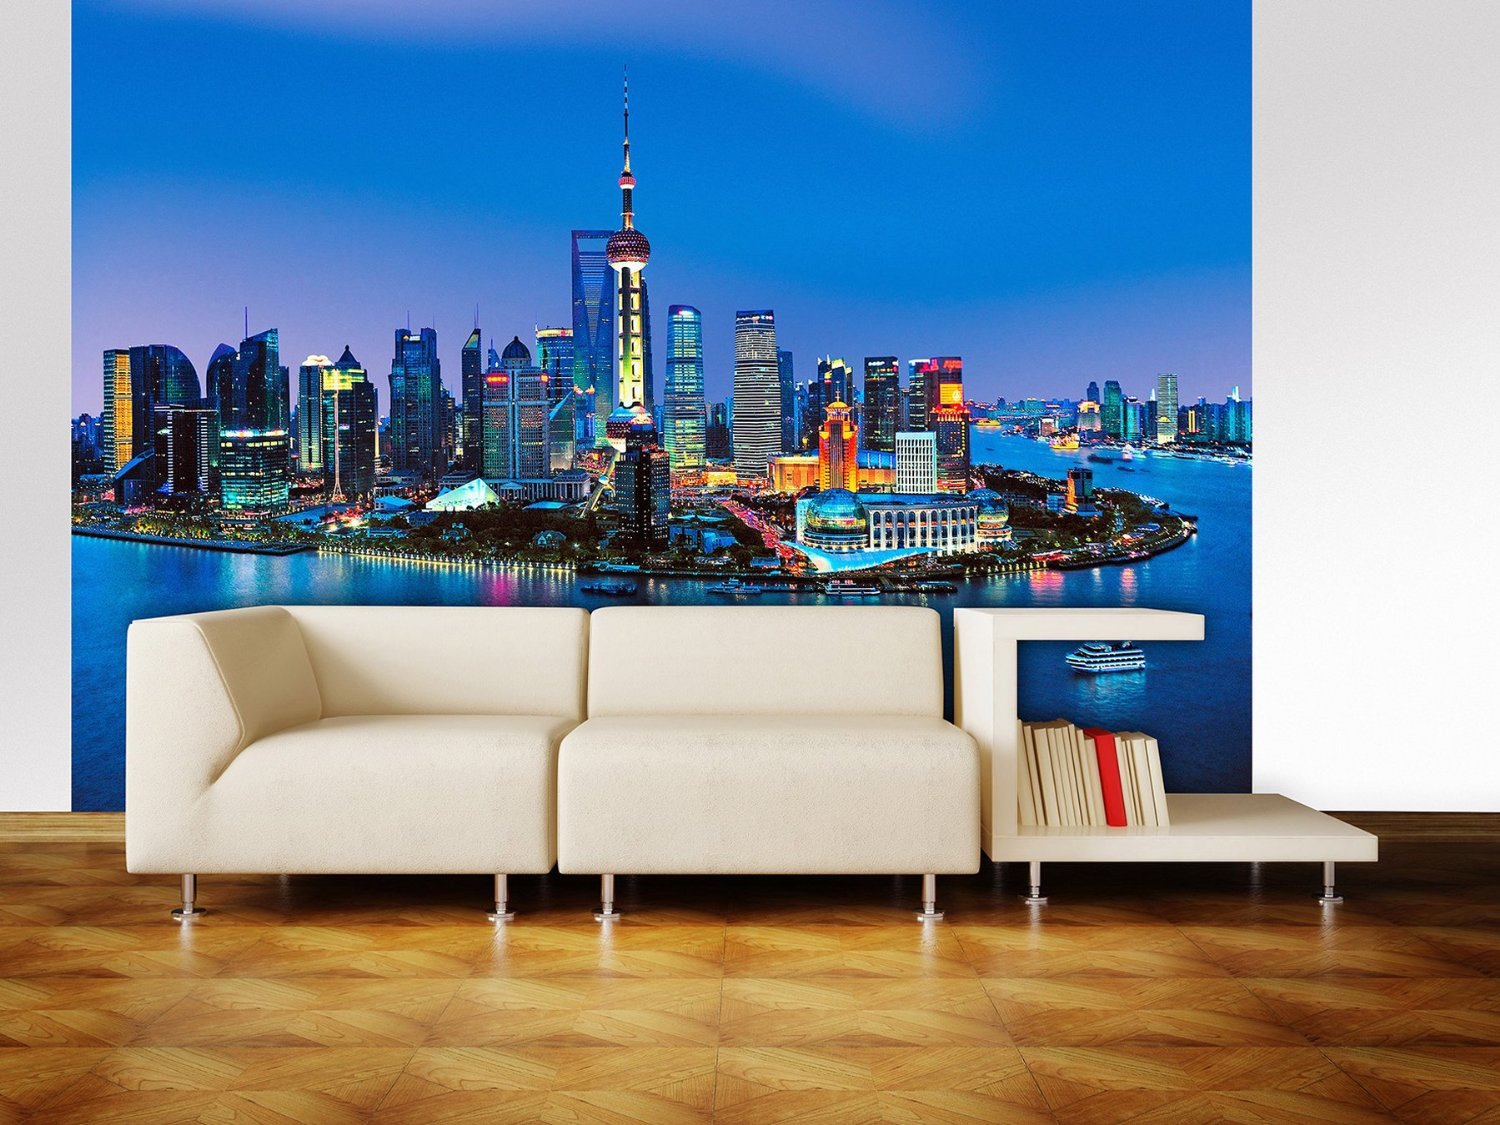 Shanghai skyline wall mural dm135 for Cityscape murals photo wall mural